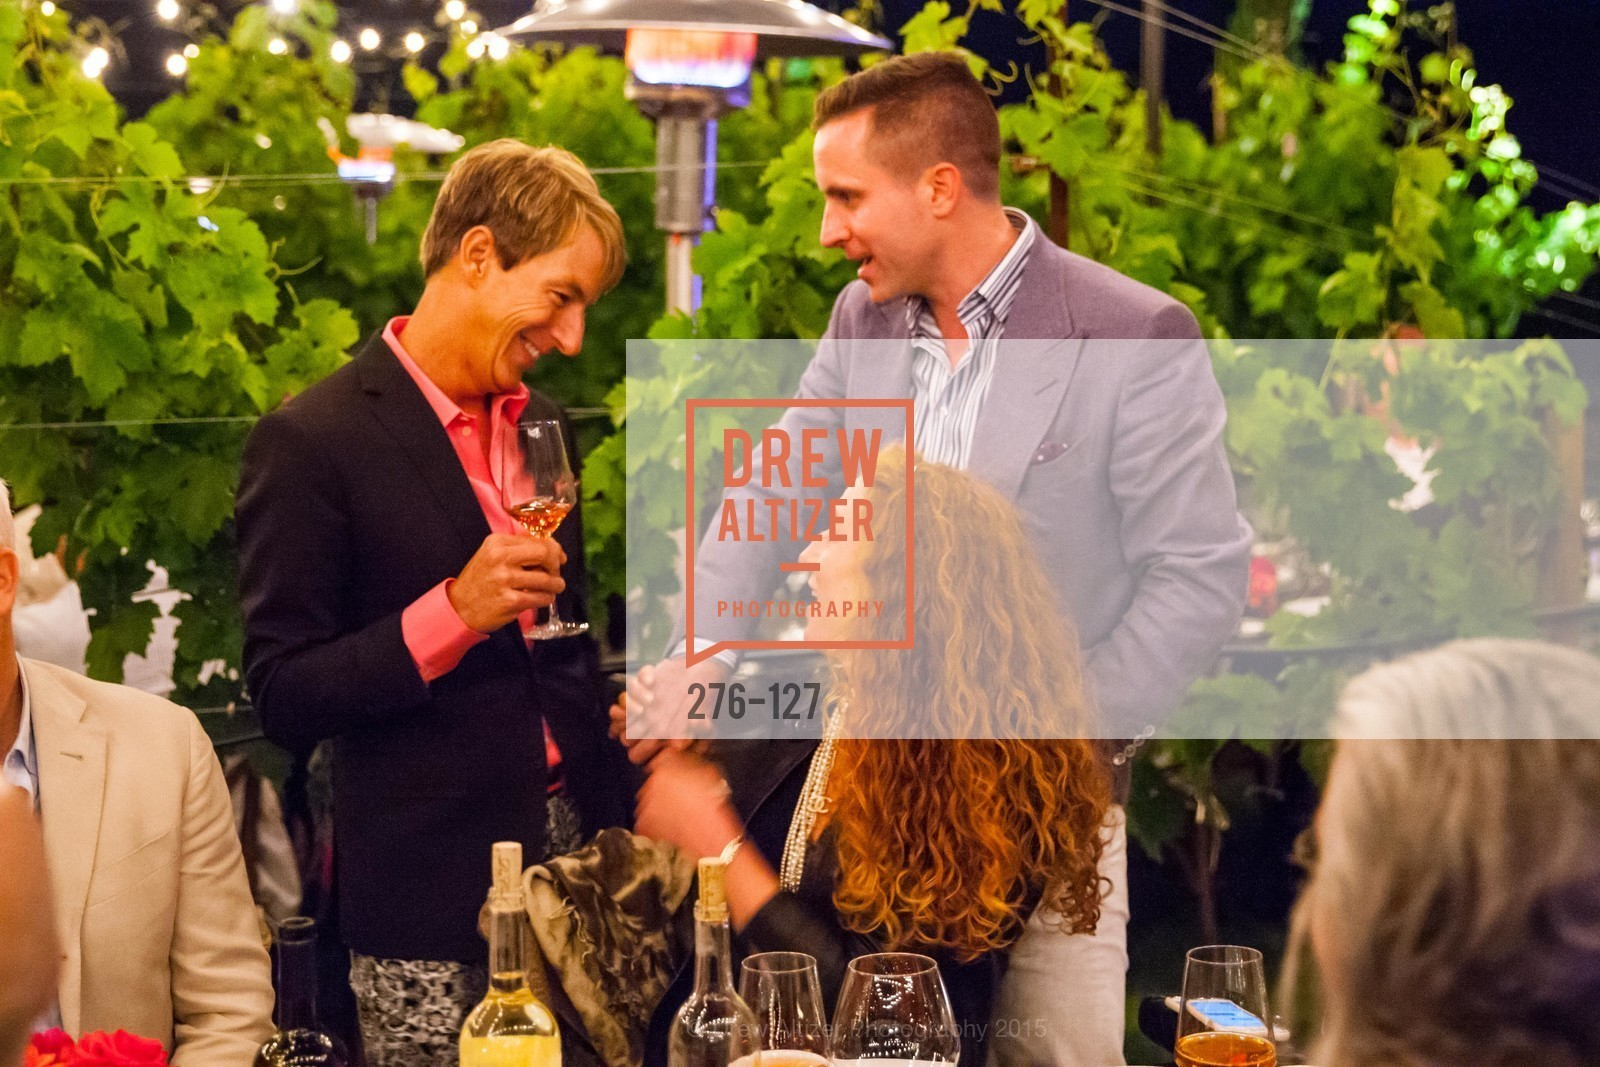 Jack Calhoun, Ari Kofayan, An Evening in the Vineyard hosted by JACK CALHOUN & TRENT NORRIS, Jack Calhoun & Trent Norris Vineyard. 3393 Dry Creek Road, Healdsburg CA 95448, May 22nd, 2015,Drew Altizer, Drew Altizer Photography, full-service agency, private events, San Francisco photographer, photographer california